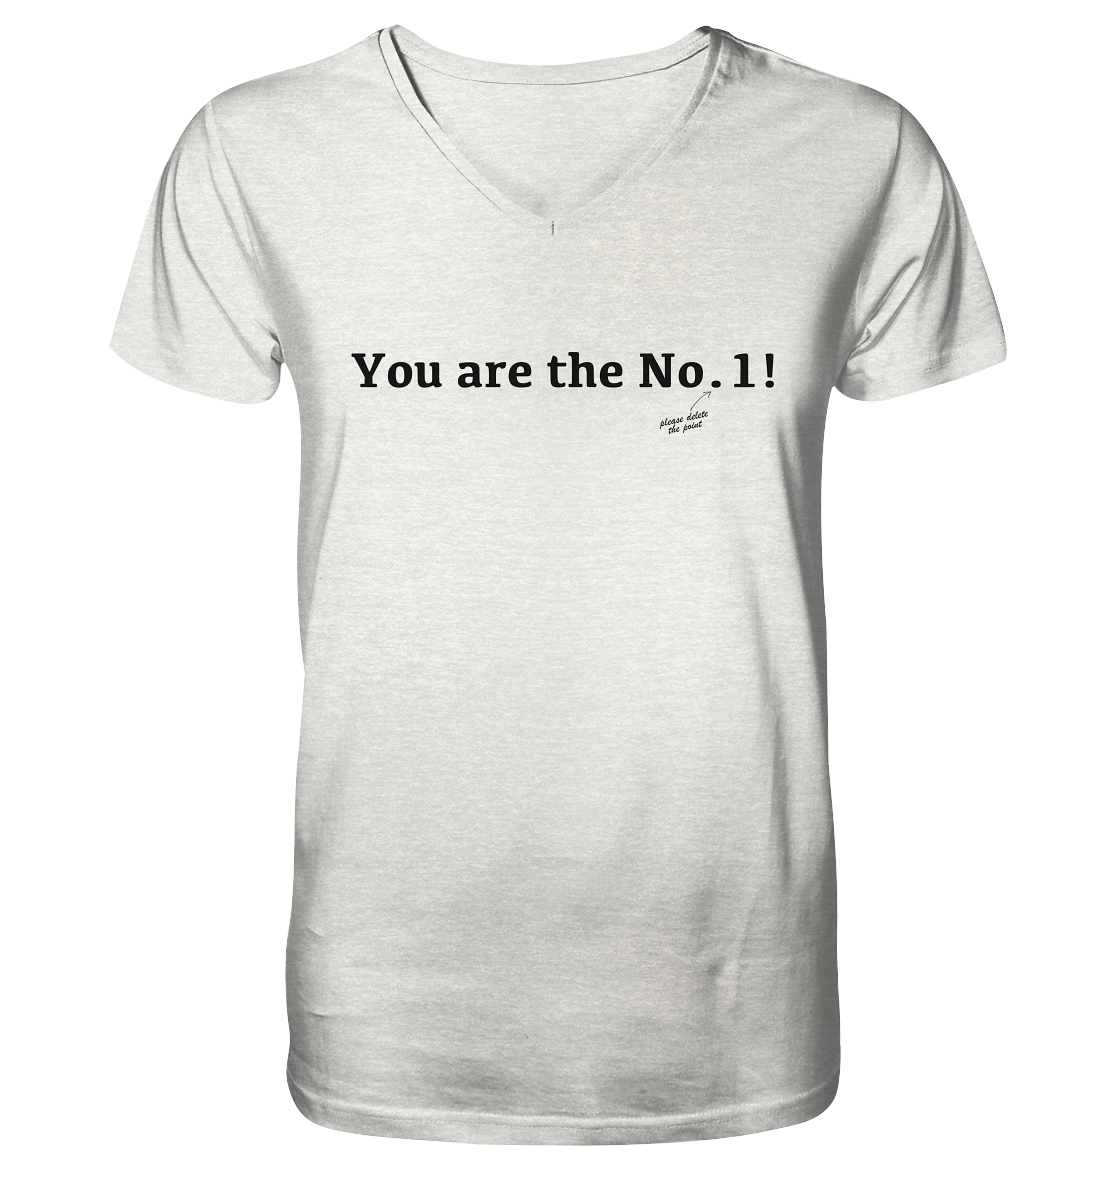 You are the No. 1! - Mens Organic V-Neck Shirt